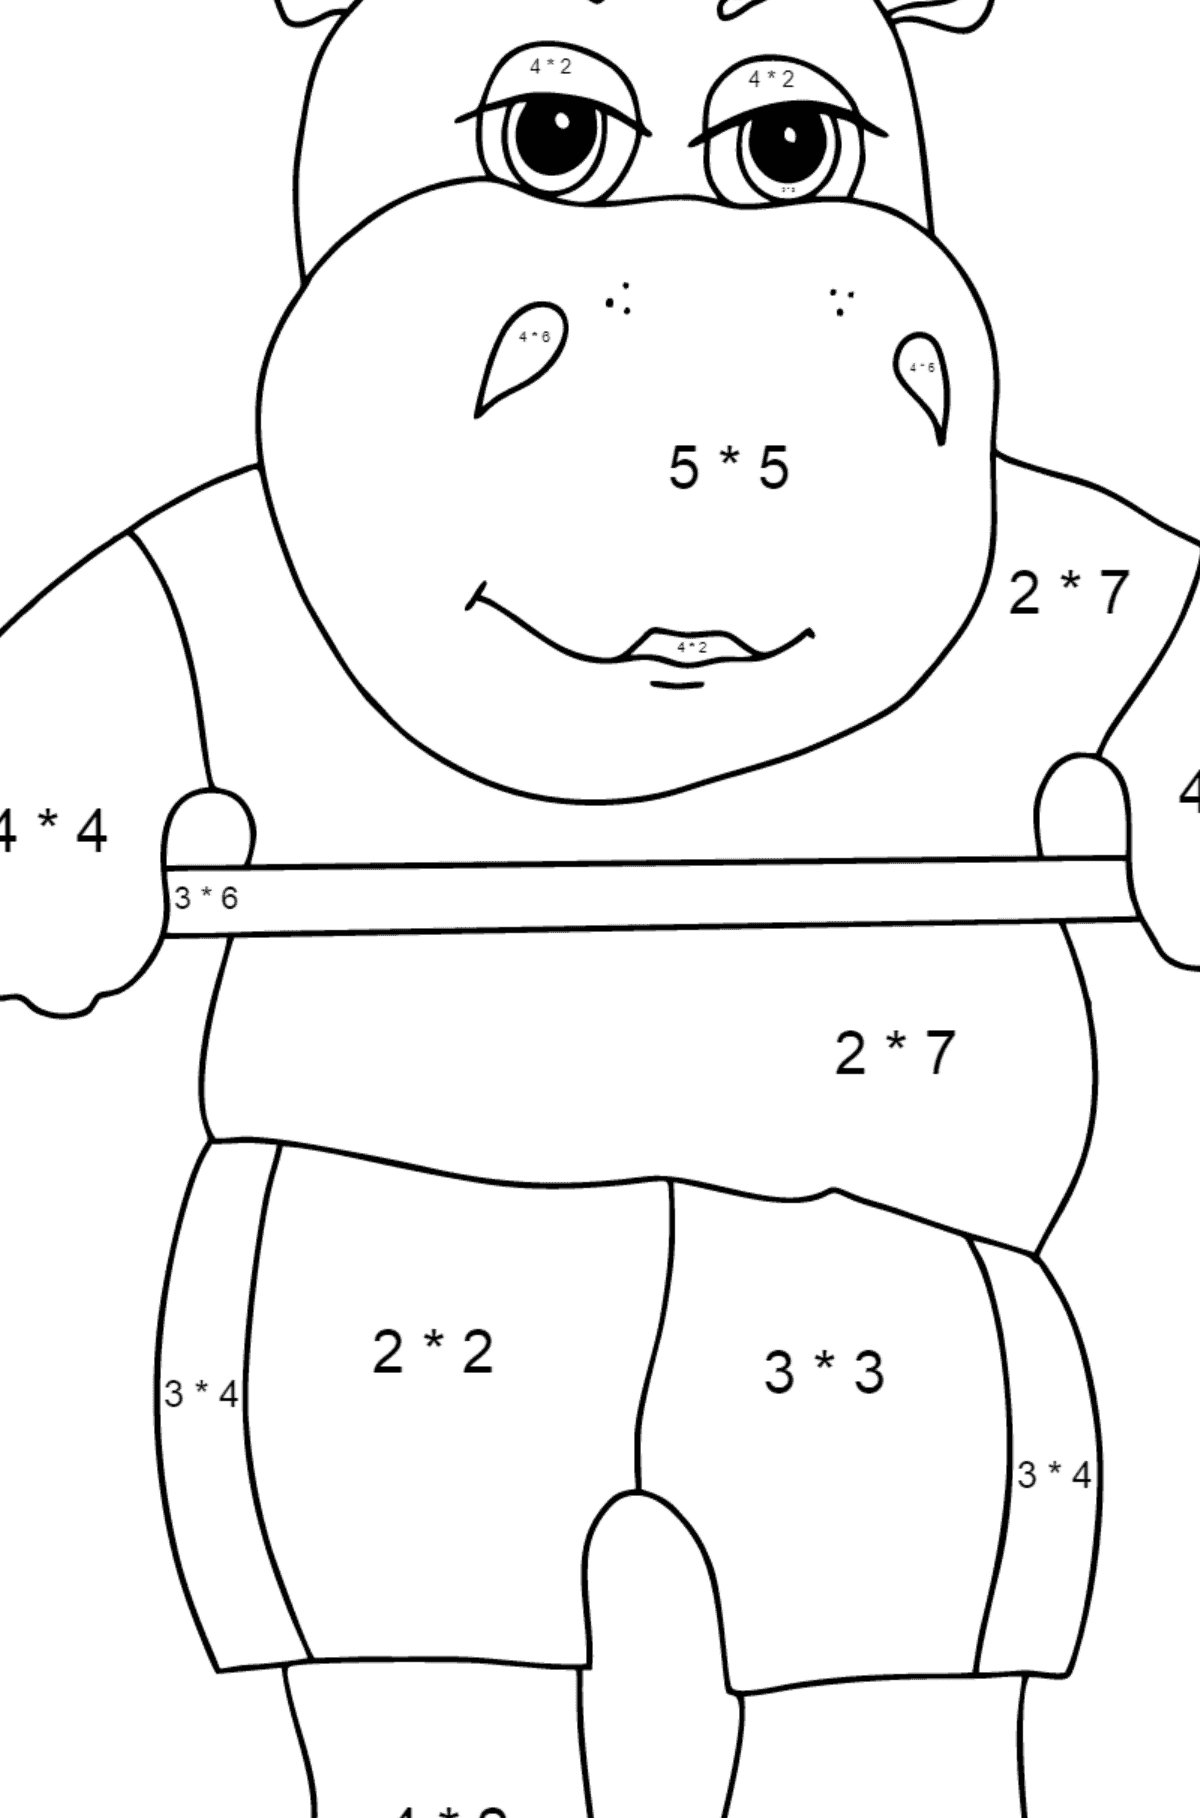 Coloring Page - A Hippo Lifts a Barbell for Children  - Color by Number Multiplication